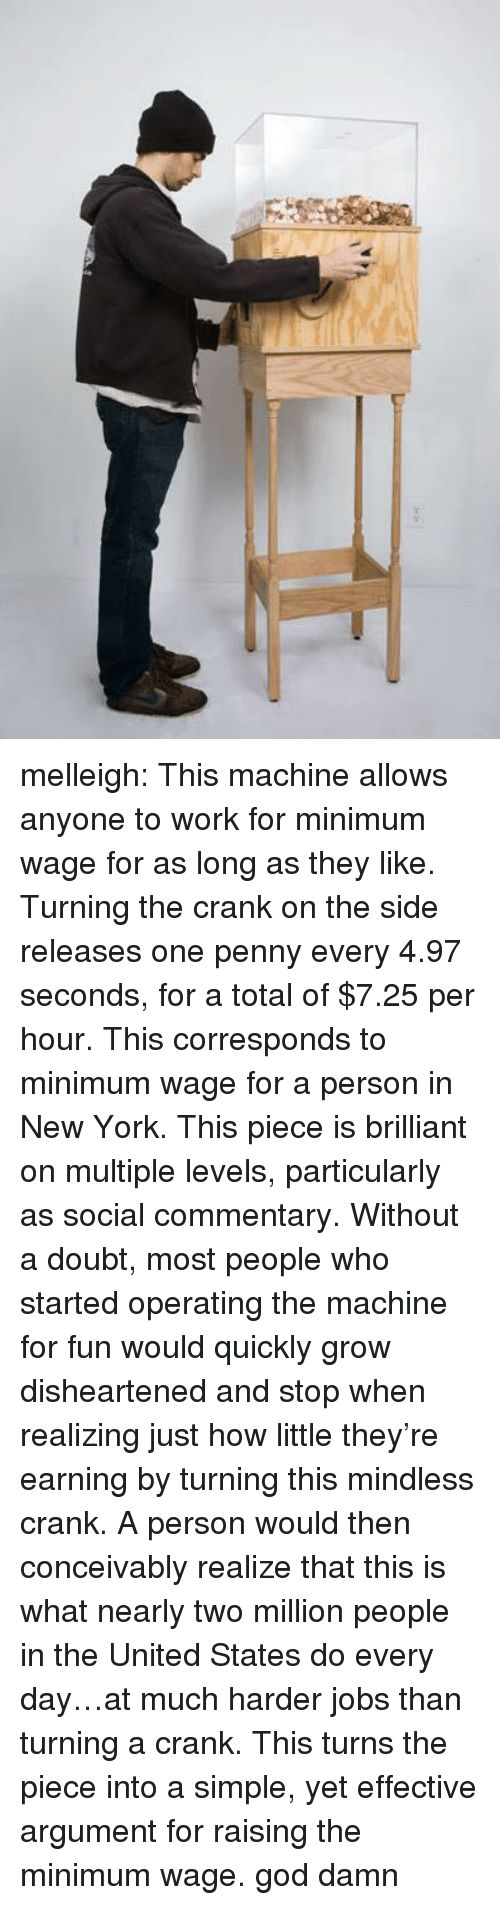 God, New York, and Target: melleigh:   This machine allows anyone to work for minimum wage for as long as they like. Turning the crank on the side releases one penny every 4.97 seconds, for a total of $7.25 per hour. This corresponds to minimum wage for a person in New York. This piece is brilliant on multiple levels, particularly as social commentary. Without a doubt, most people who started operating the machine for fun would quickly grow disheartened and stop when realizing just how little they're earning by turning this mindless crank. A person would then conceivably realize that this is what nearly two million people in the United States do every day…at much harder jobs than turning a crank. This turns the piece into a simple, yet effective argument for raising the minimum wage.  god damn